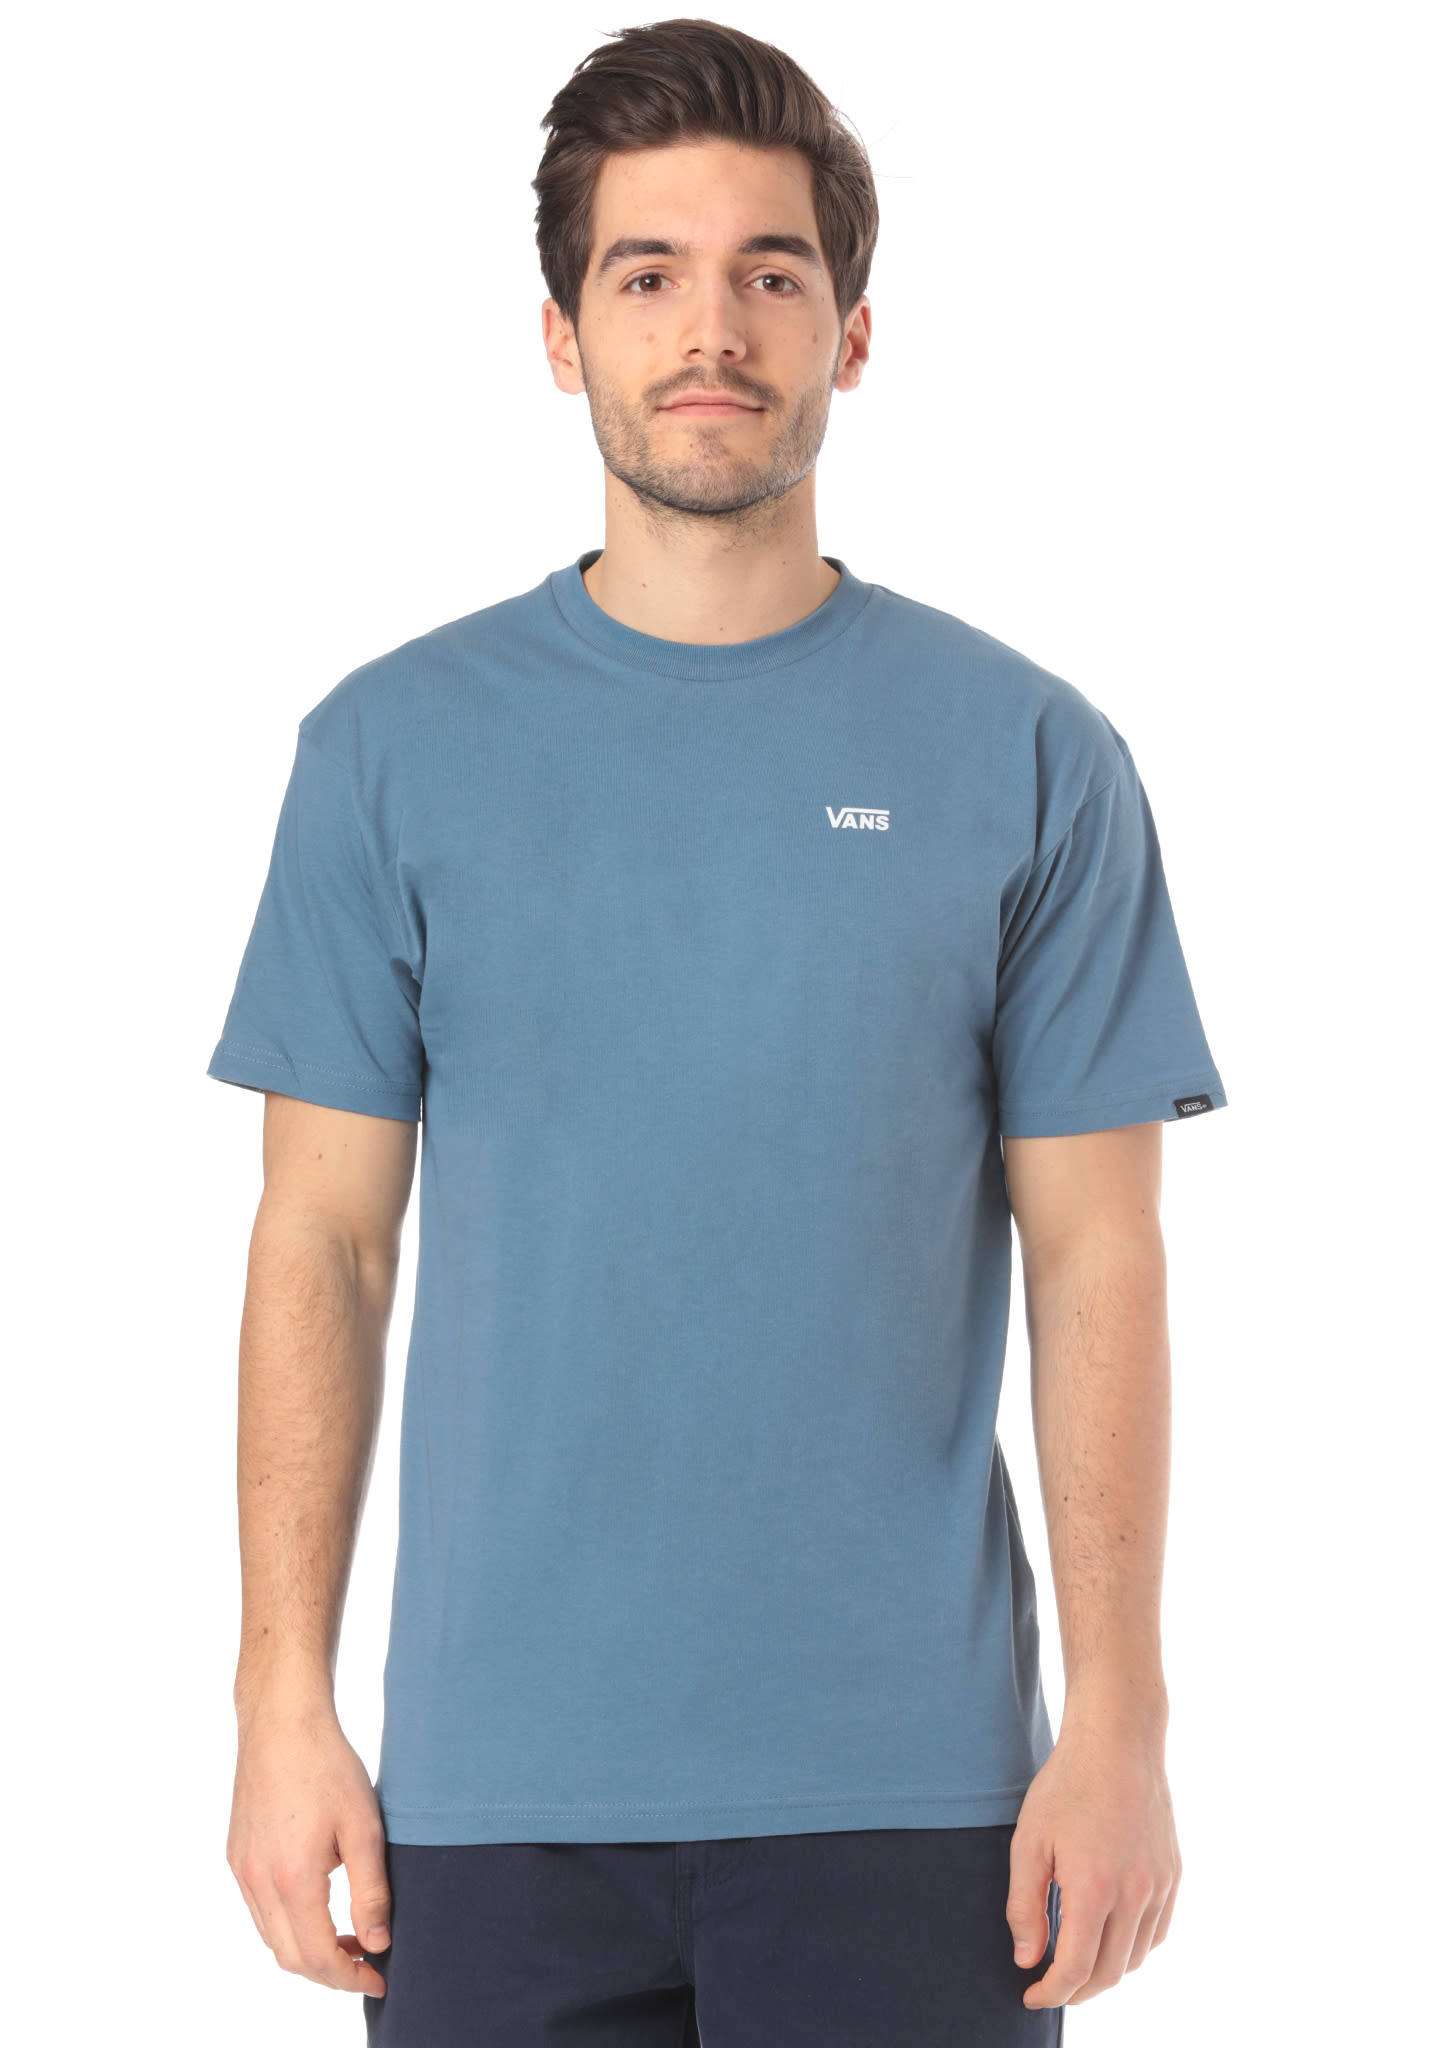 af999a85c1c13a Vans Left Chest Logo - T-Shirt for Men - Blue - Planet Sports